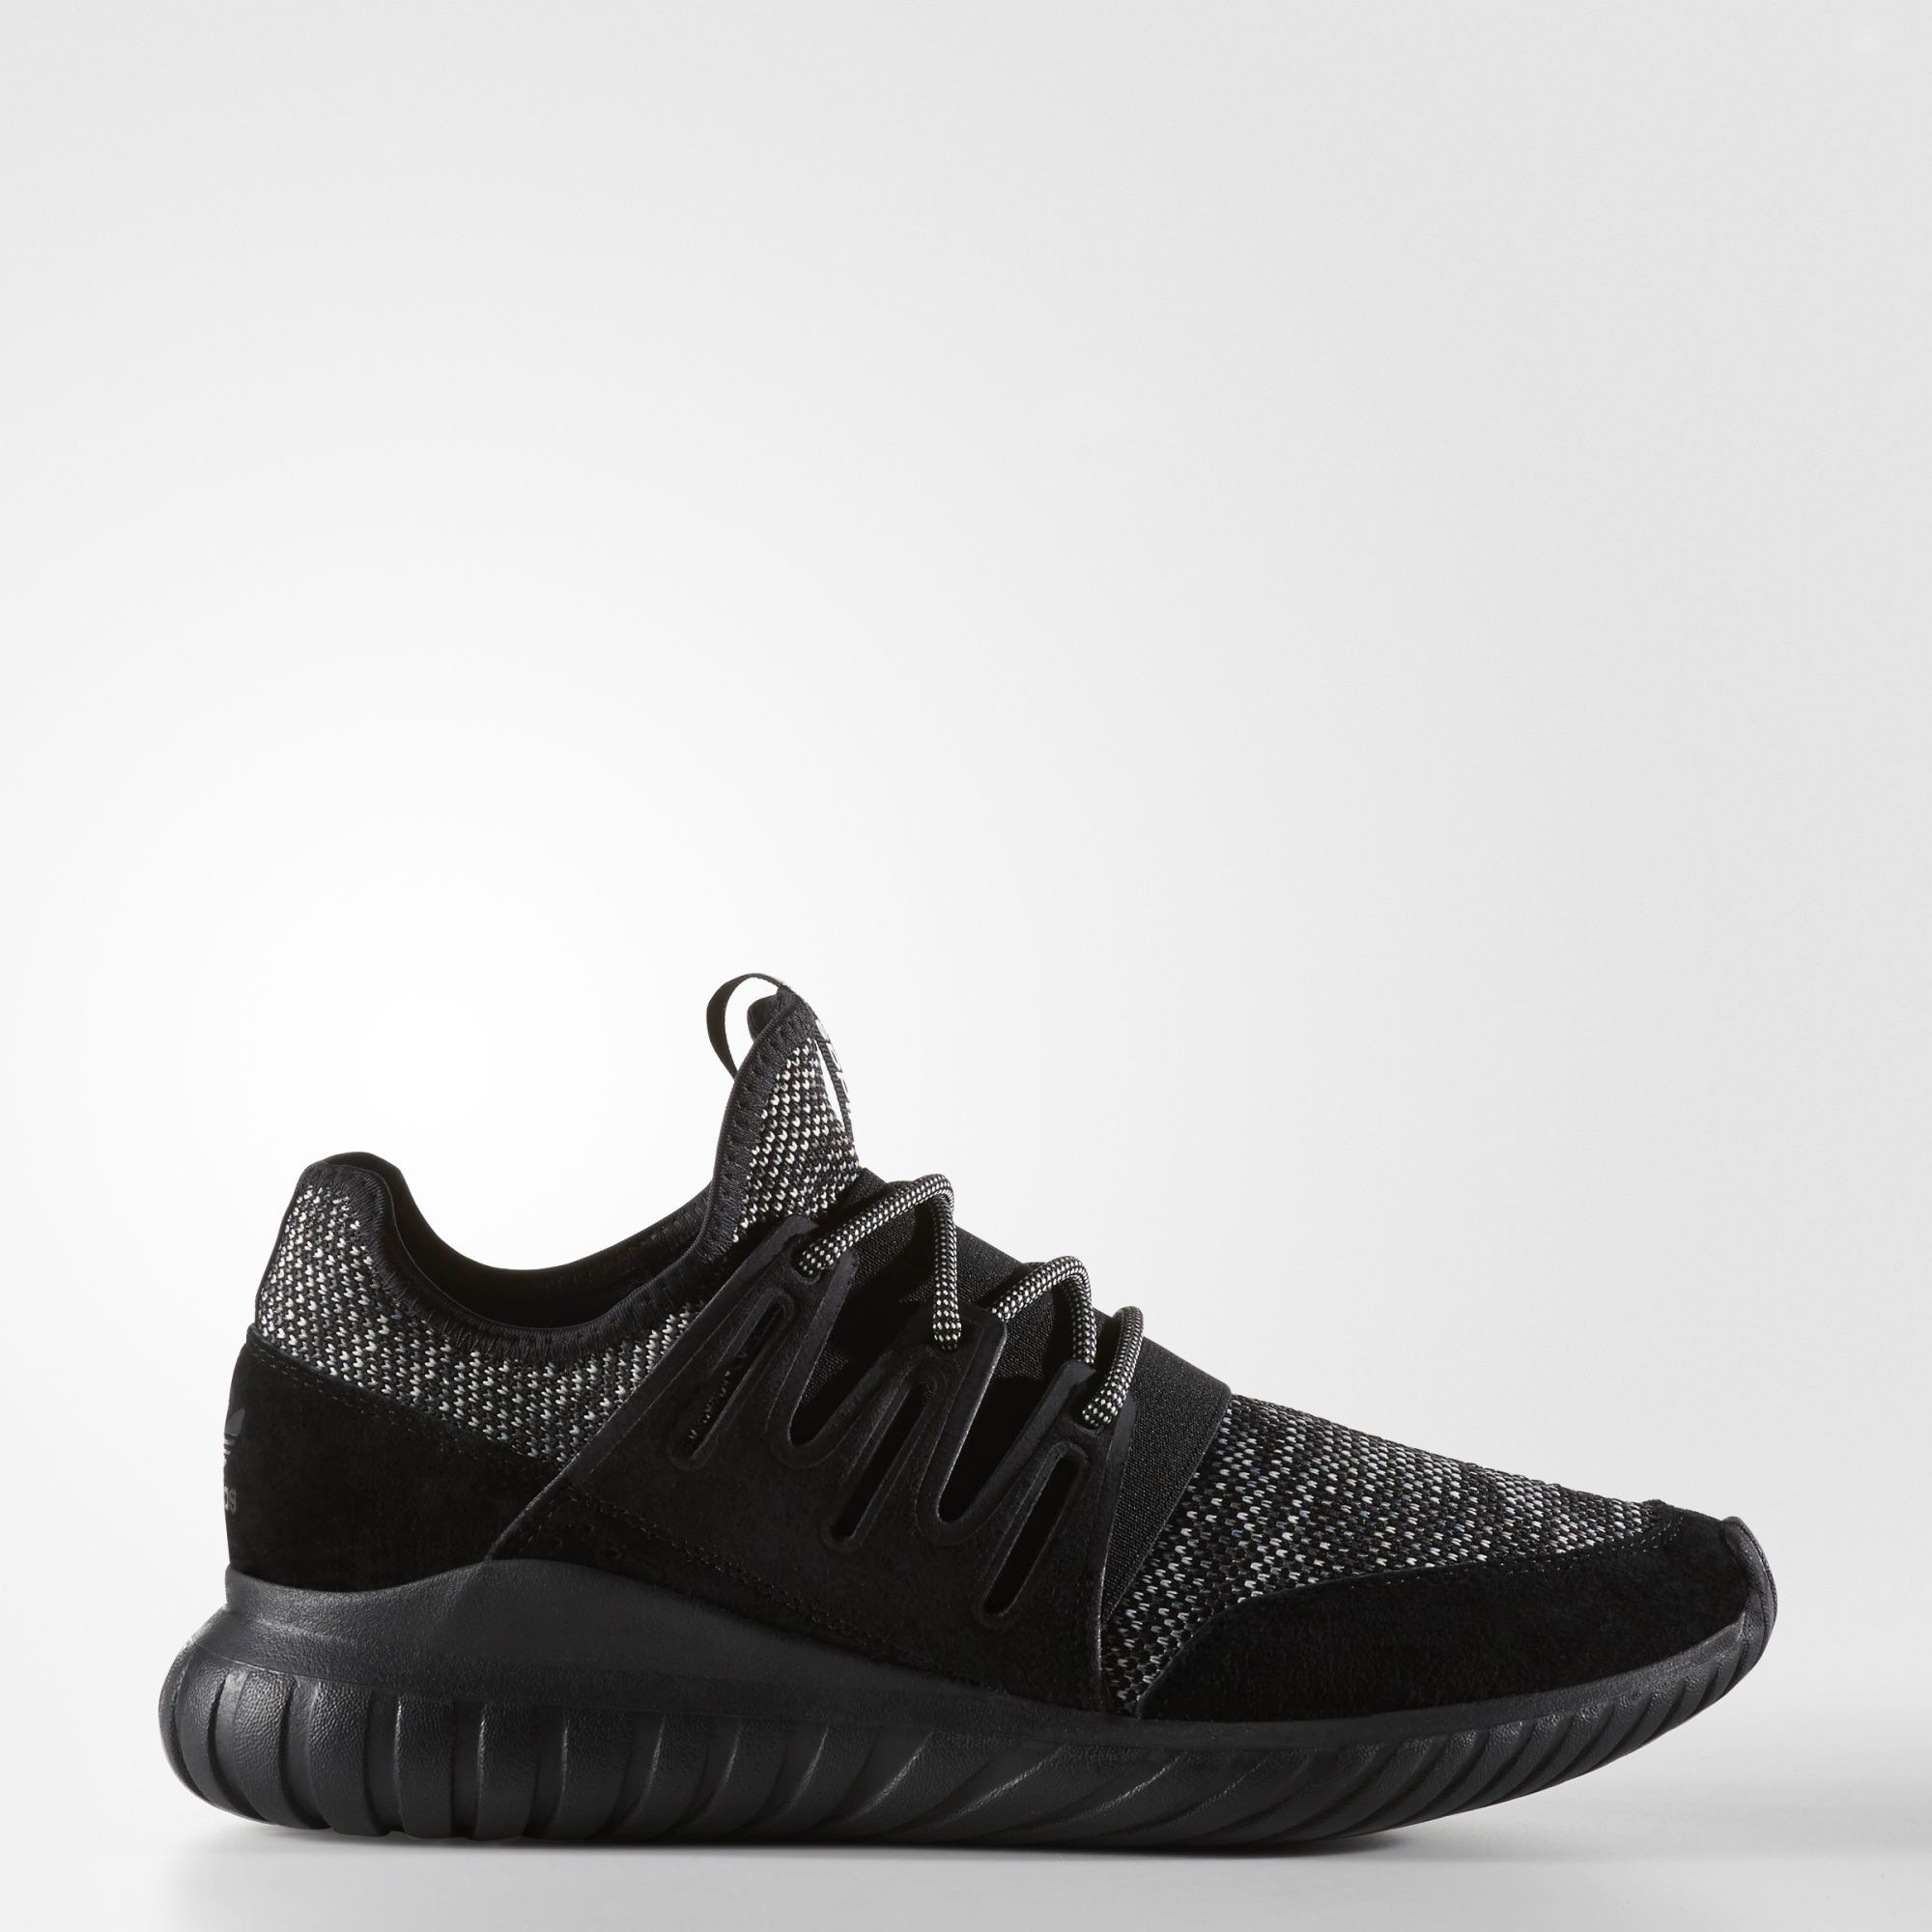 adidas - Tubular Radial Shoes Antique Brass / Solid Grey / Clear Brown  BB2394